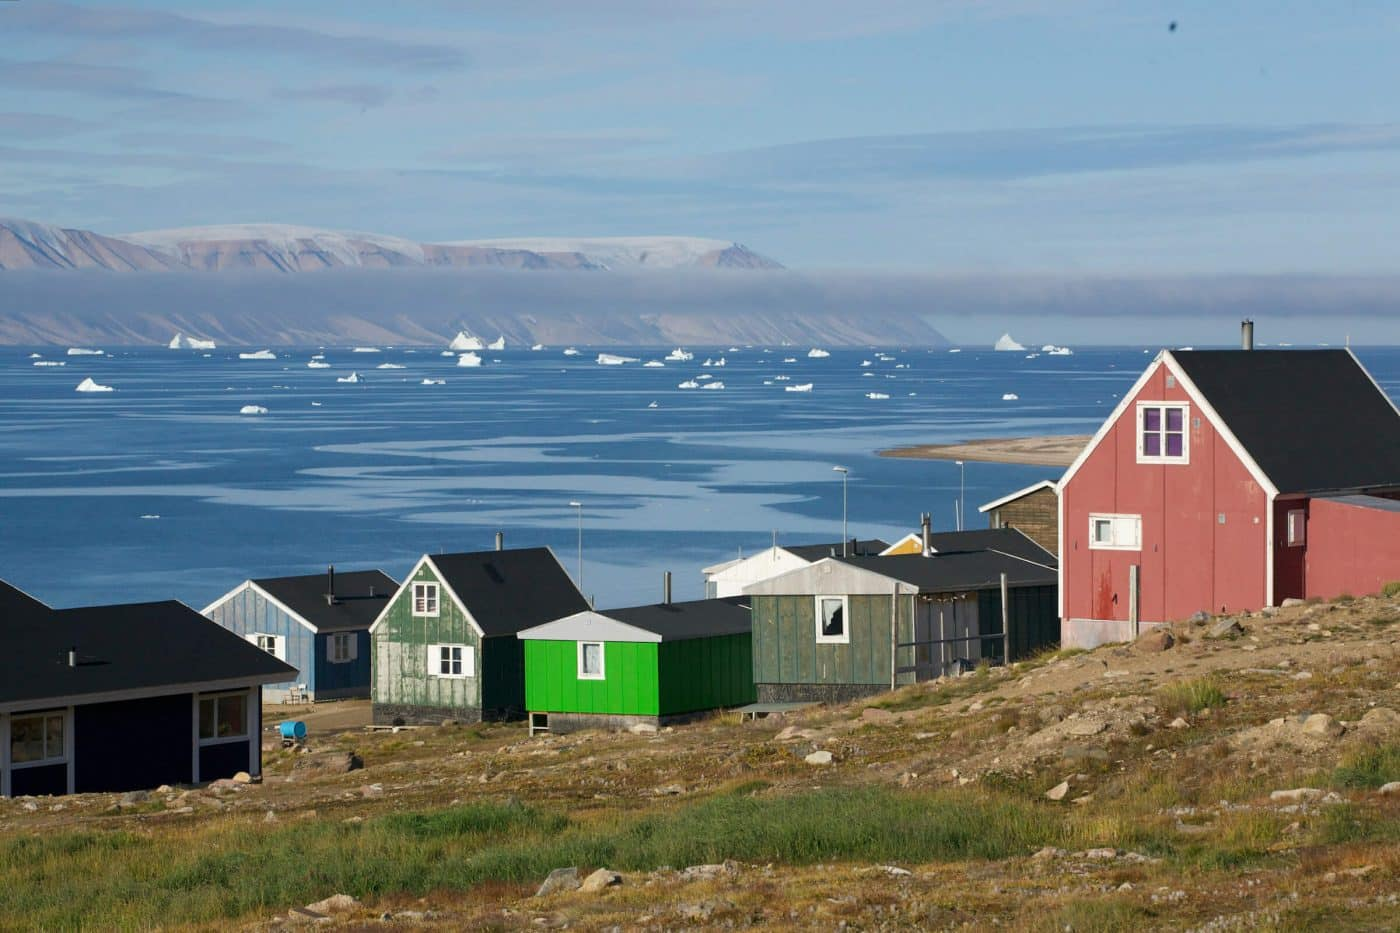 Qaanaaq, with view over the sea towards Herbert Island